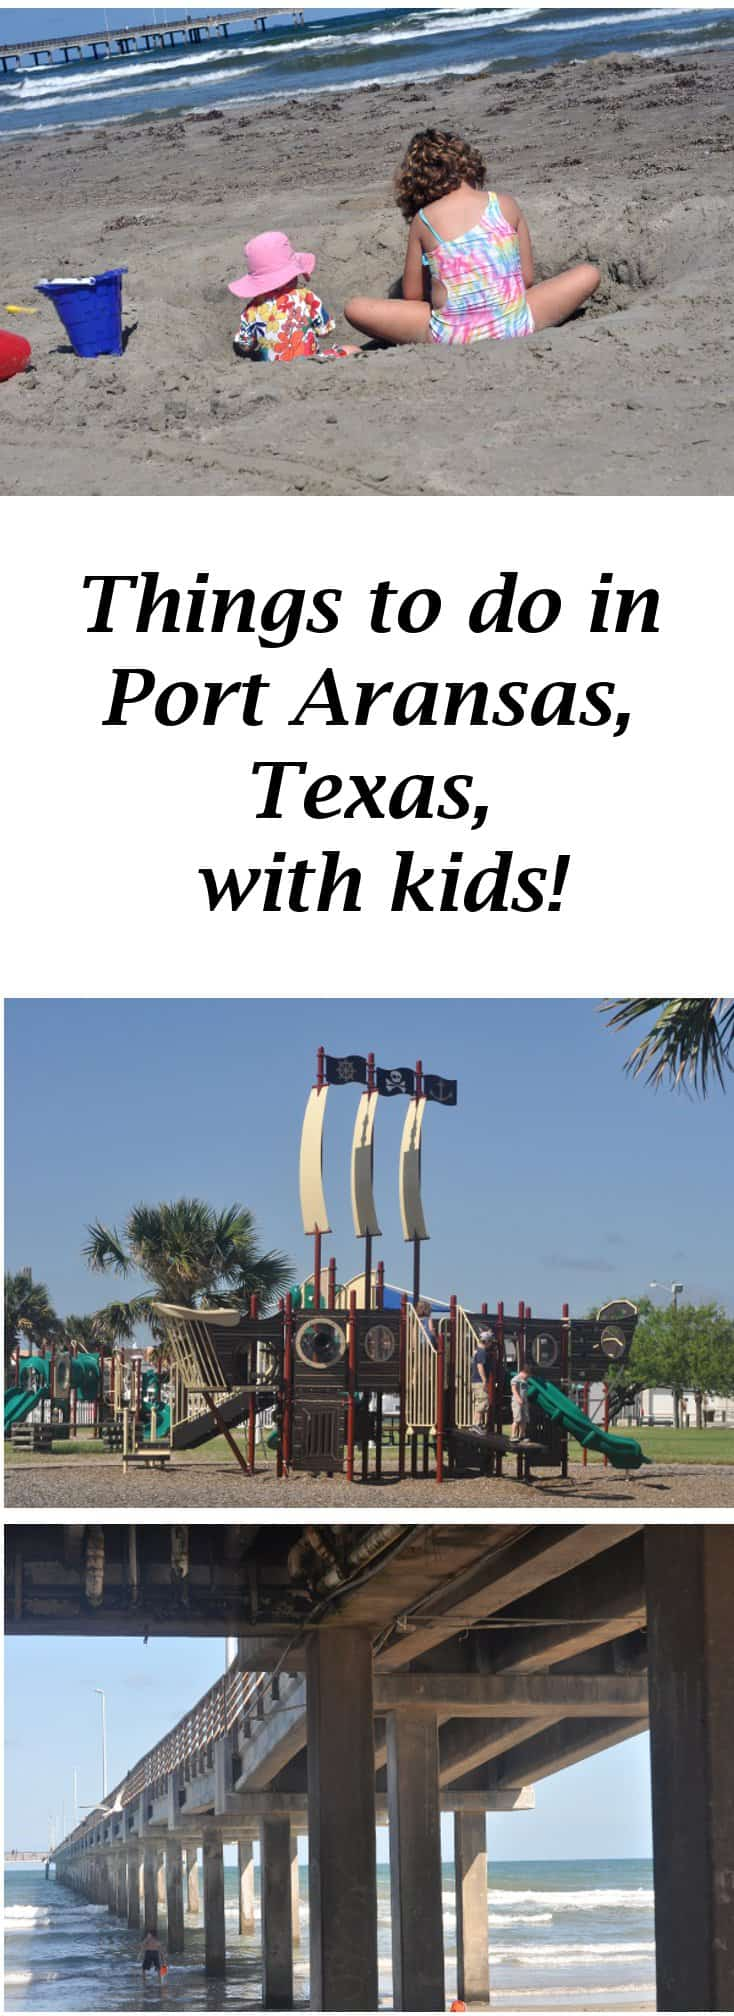 Things To Do In Port Aransas With Kids